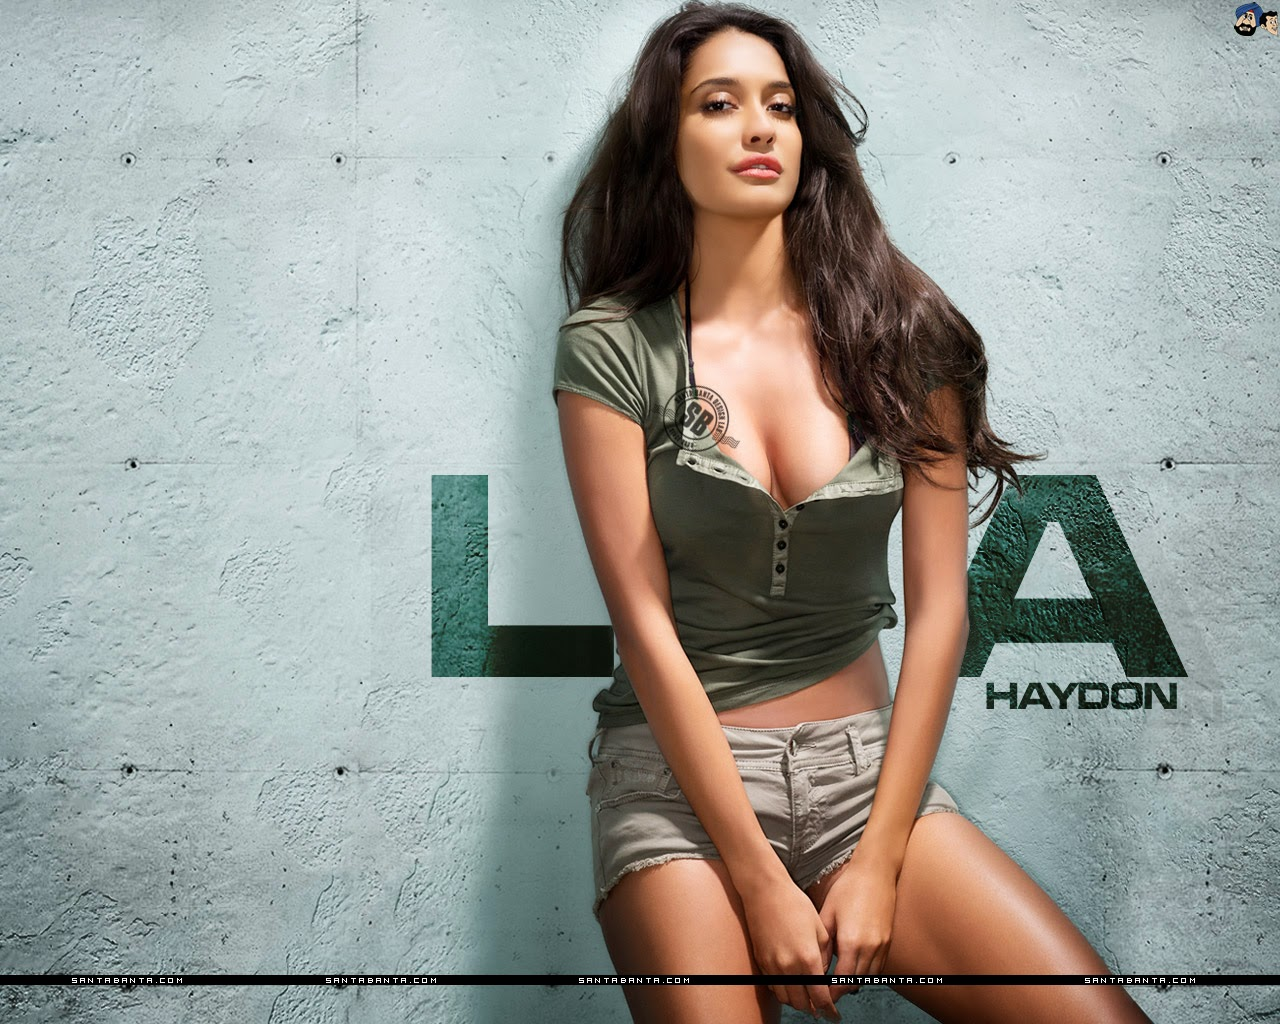 Lisa haydon Wallpaper 6 With 1280 x 1024 Resolution ( 297kB )